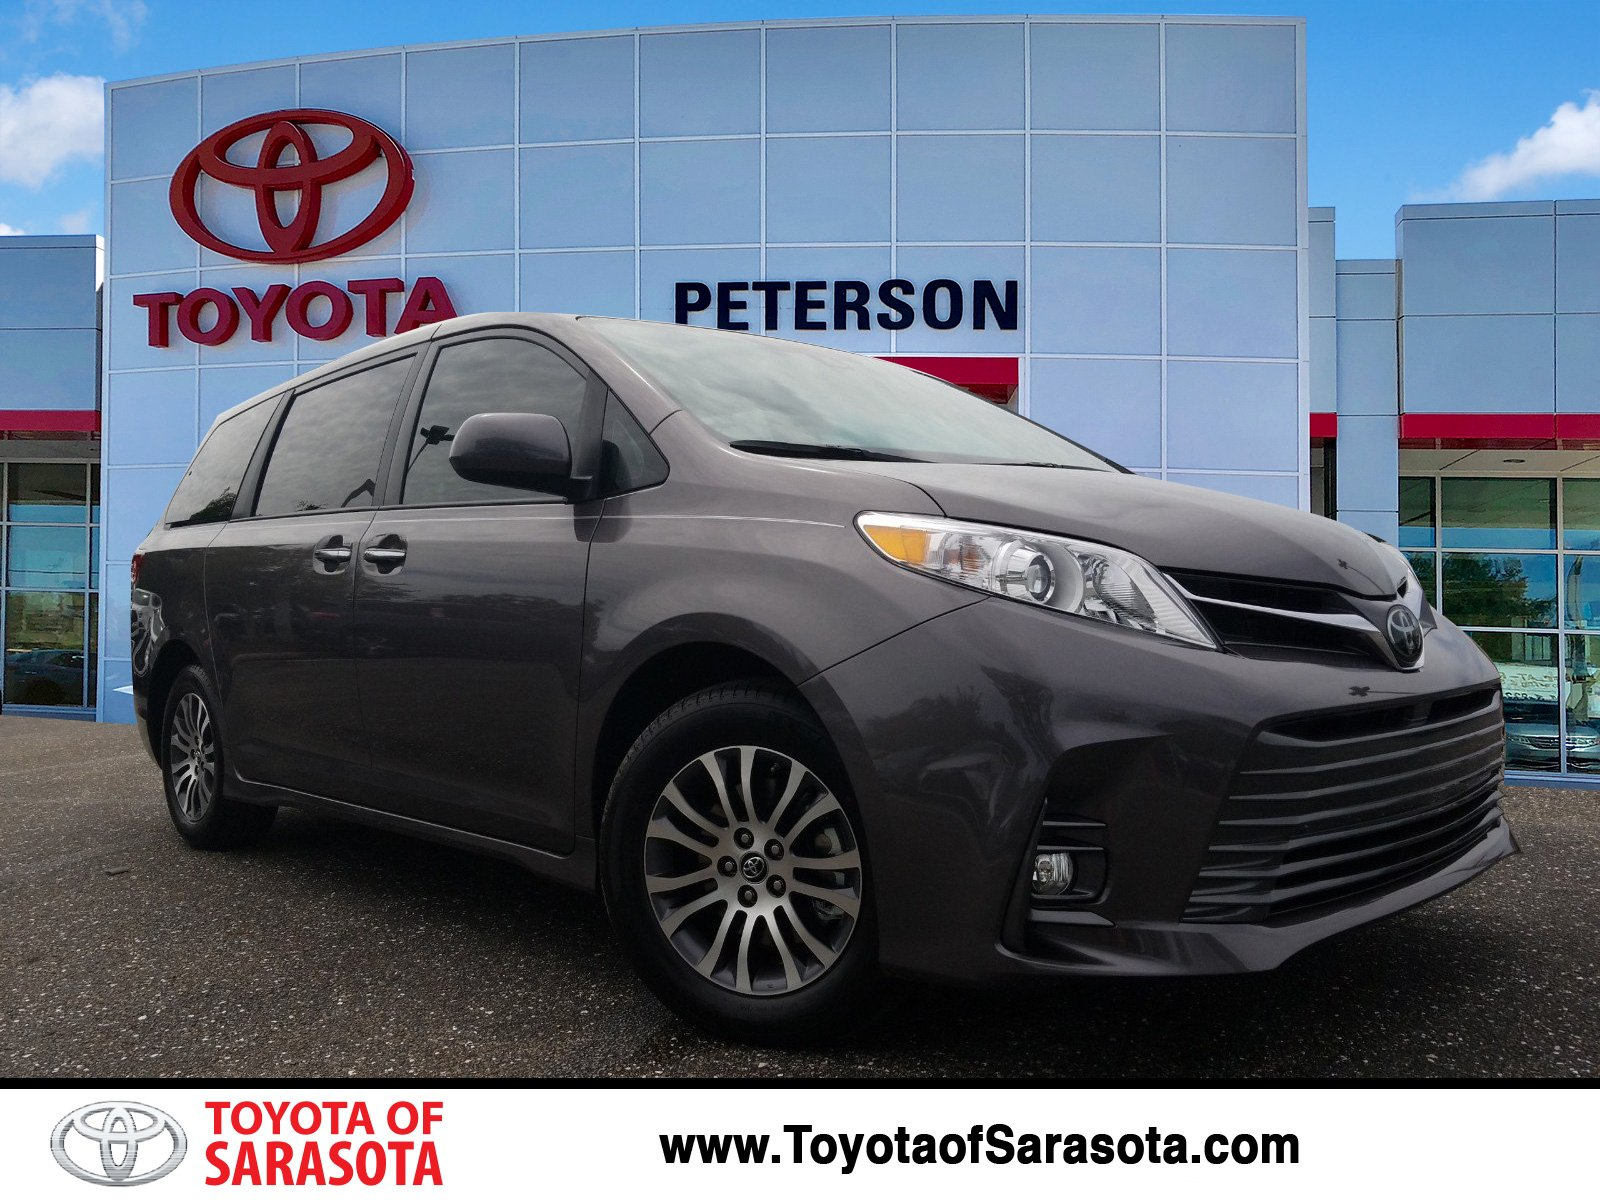 Toyota Sienna Service Manual: Fuel injector